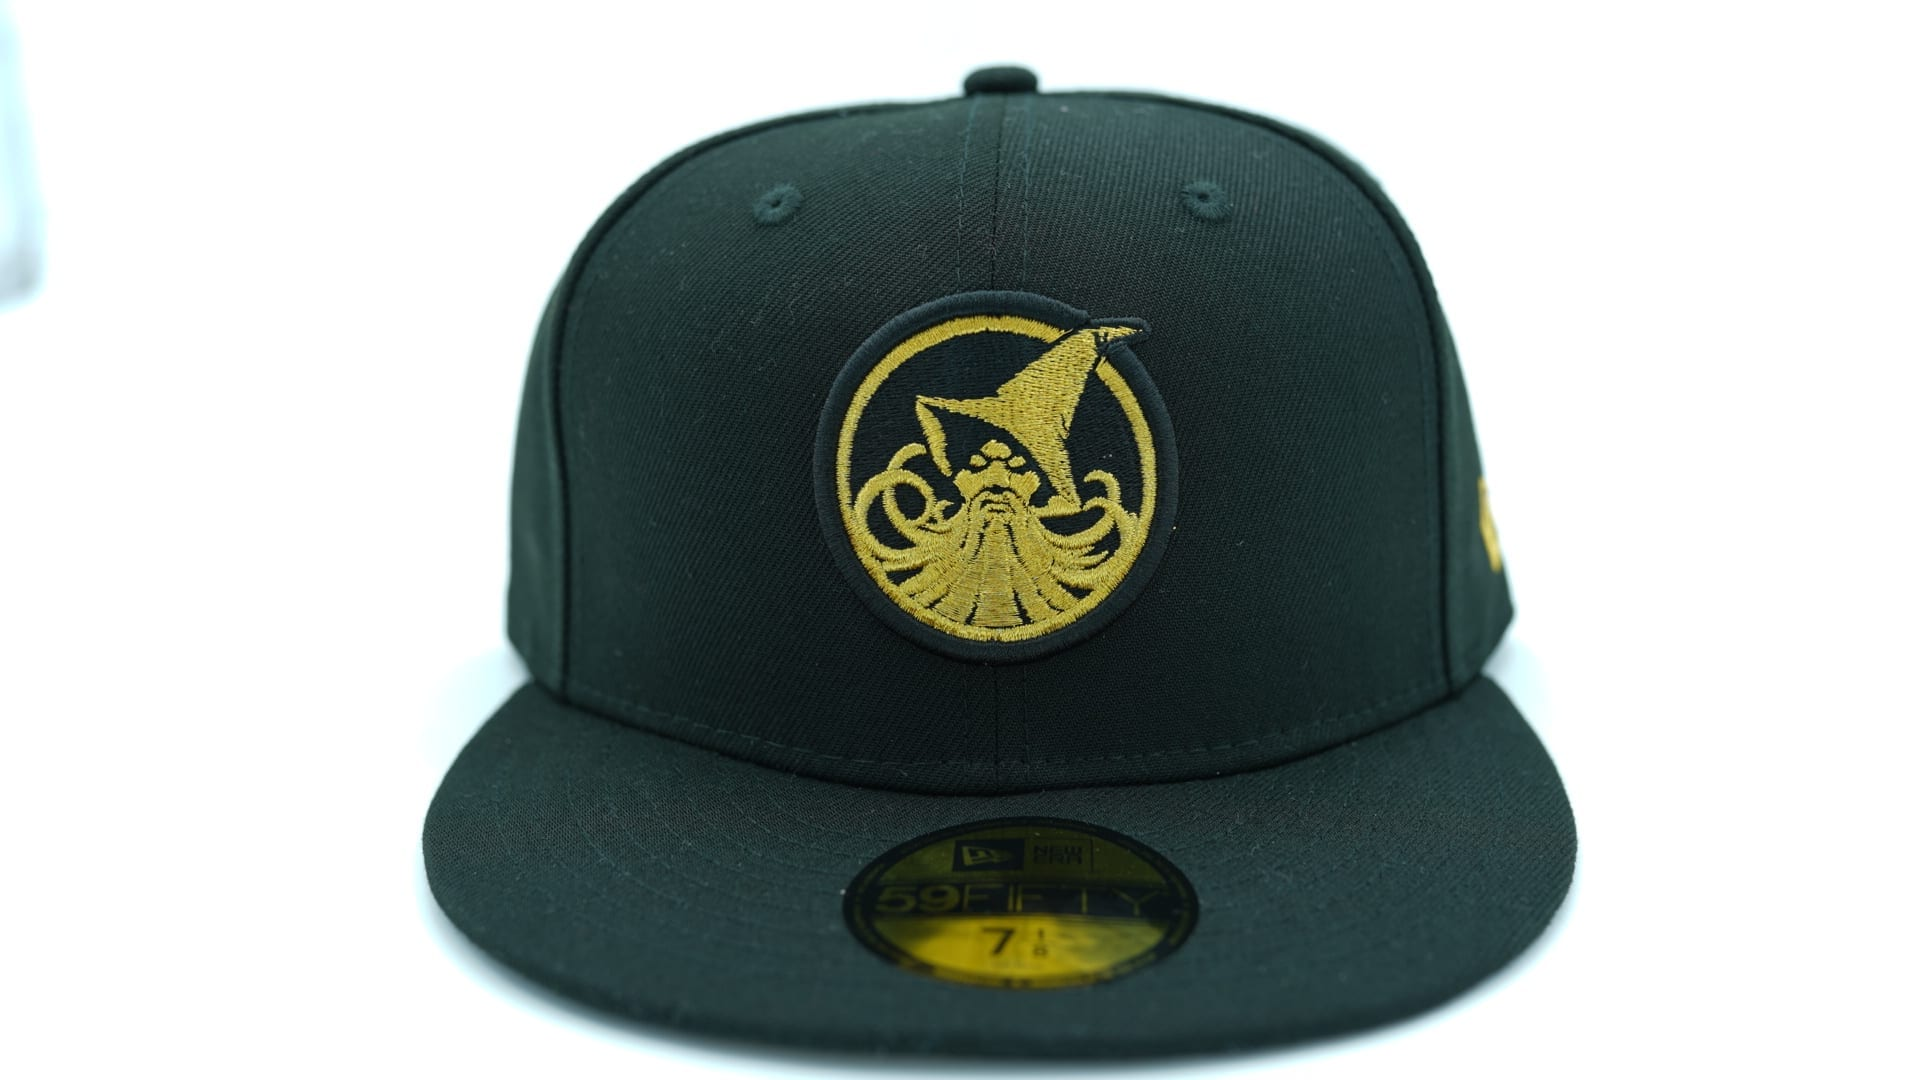 Heavy Hitters Pin Stripe Cross Bats 59Fifty Fitted Cap by JUST FITTEDS x NEW ERA